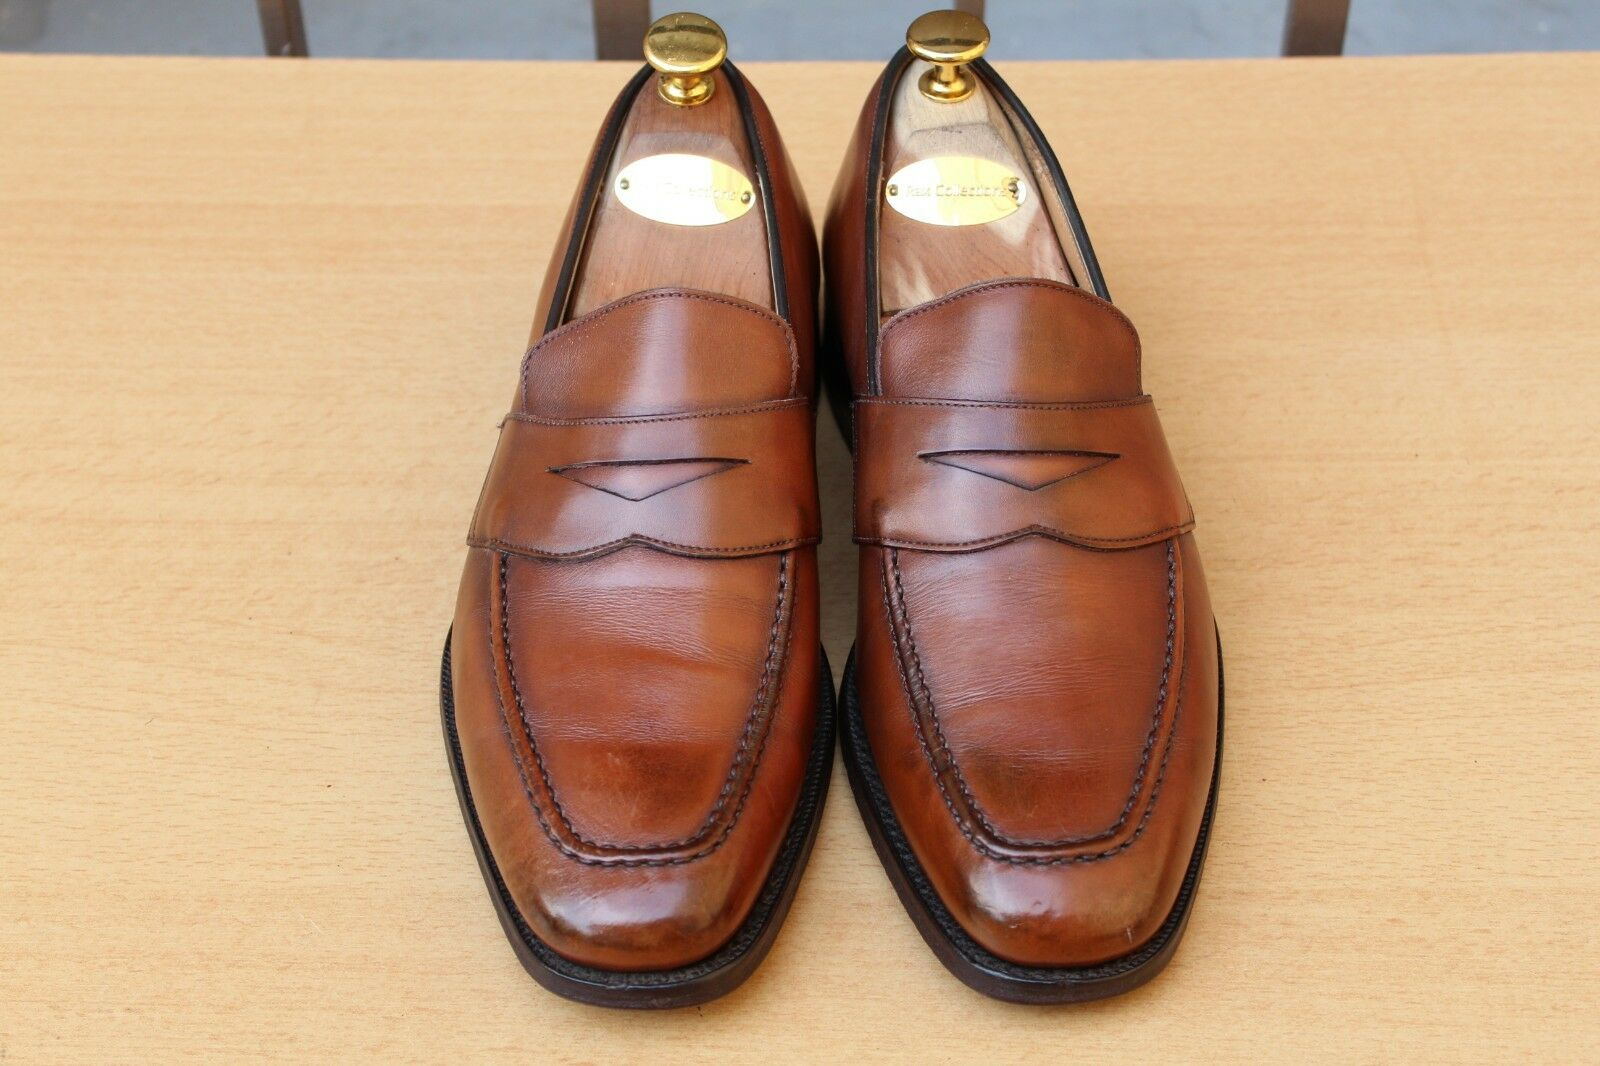 CHAUSSURE MOCASSIN CHURCH'S  NERTFORD  CUIR 60 F 40 EXCELLENT ETAT hombres zapatos